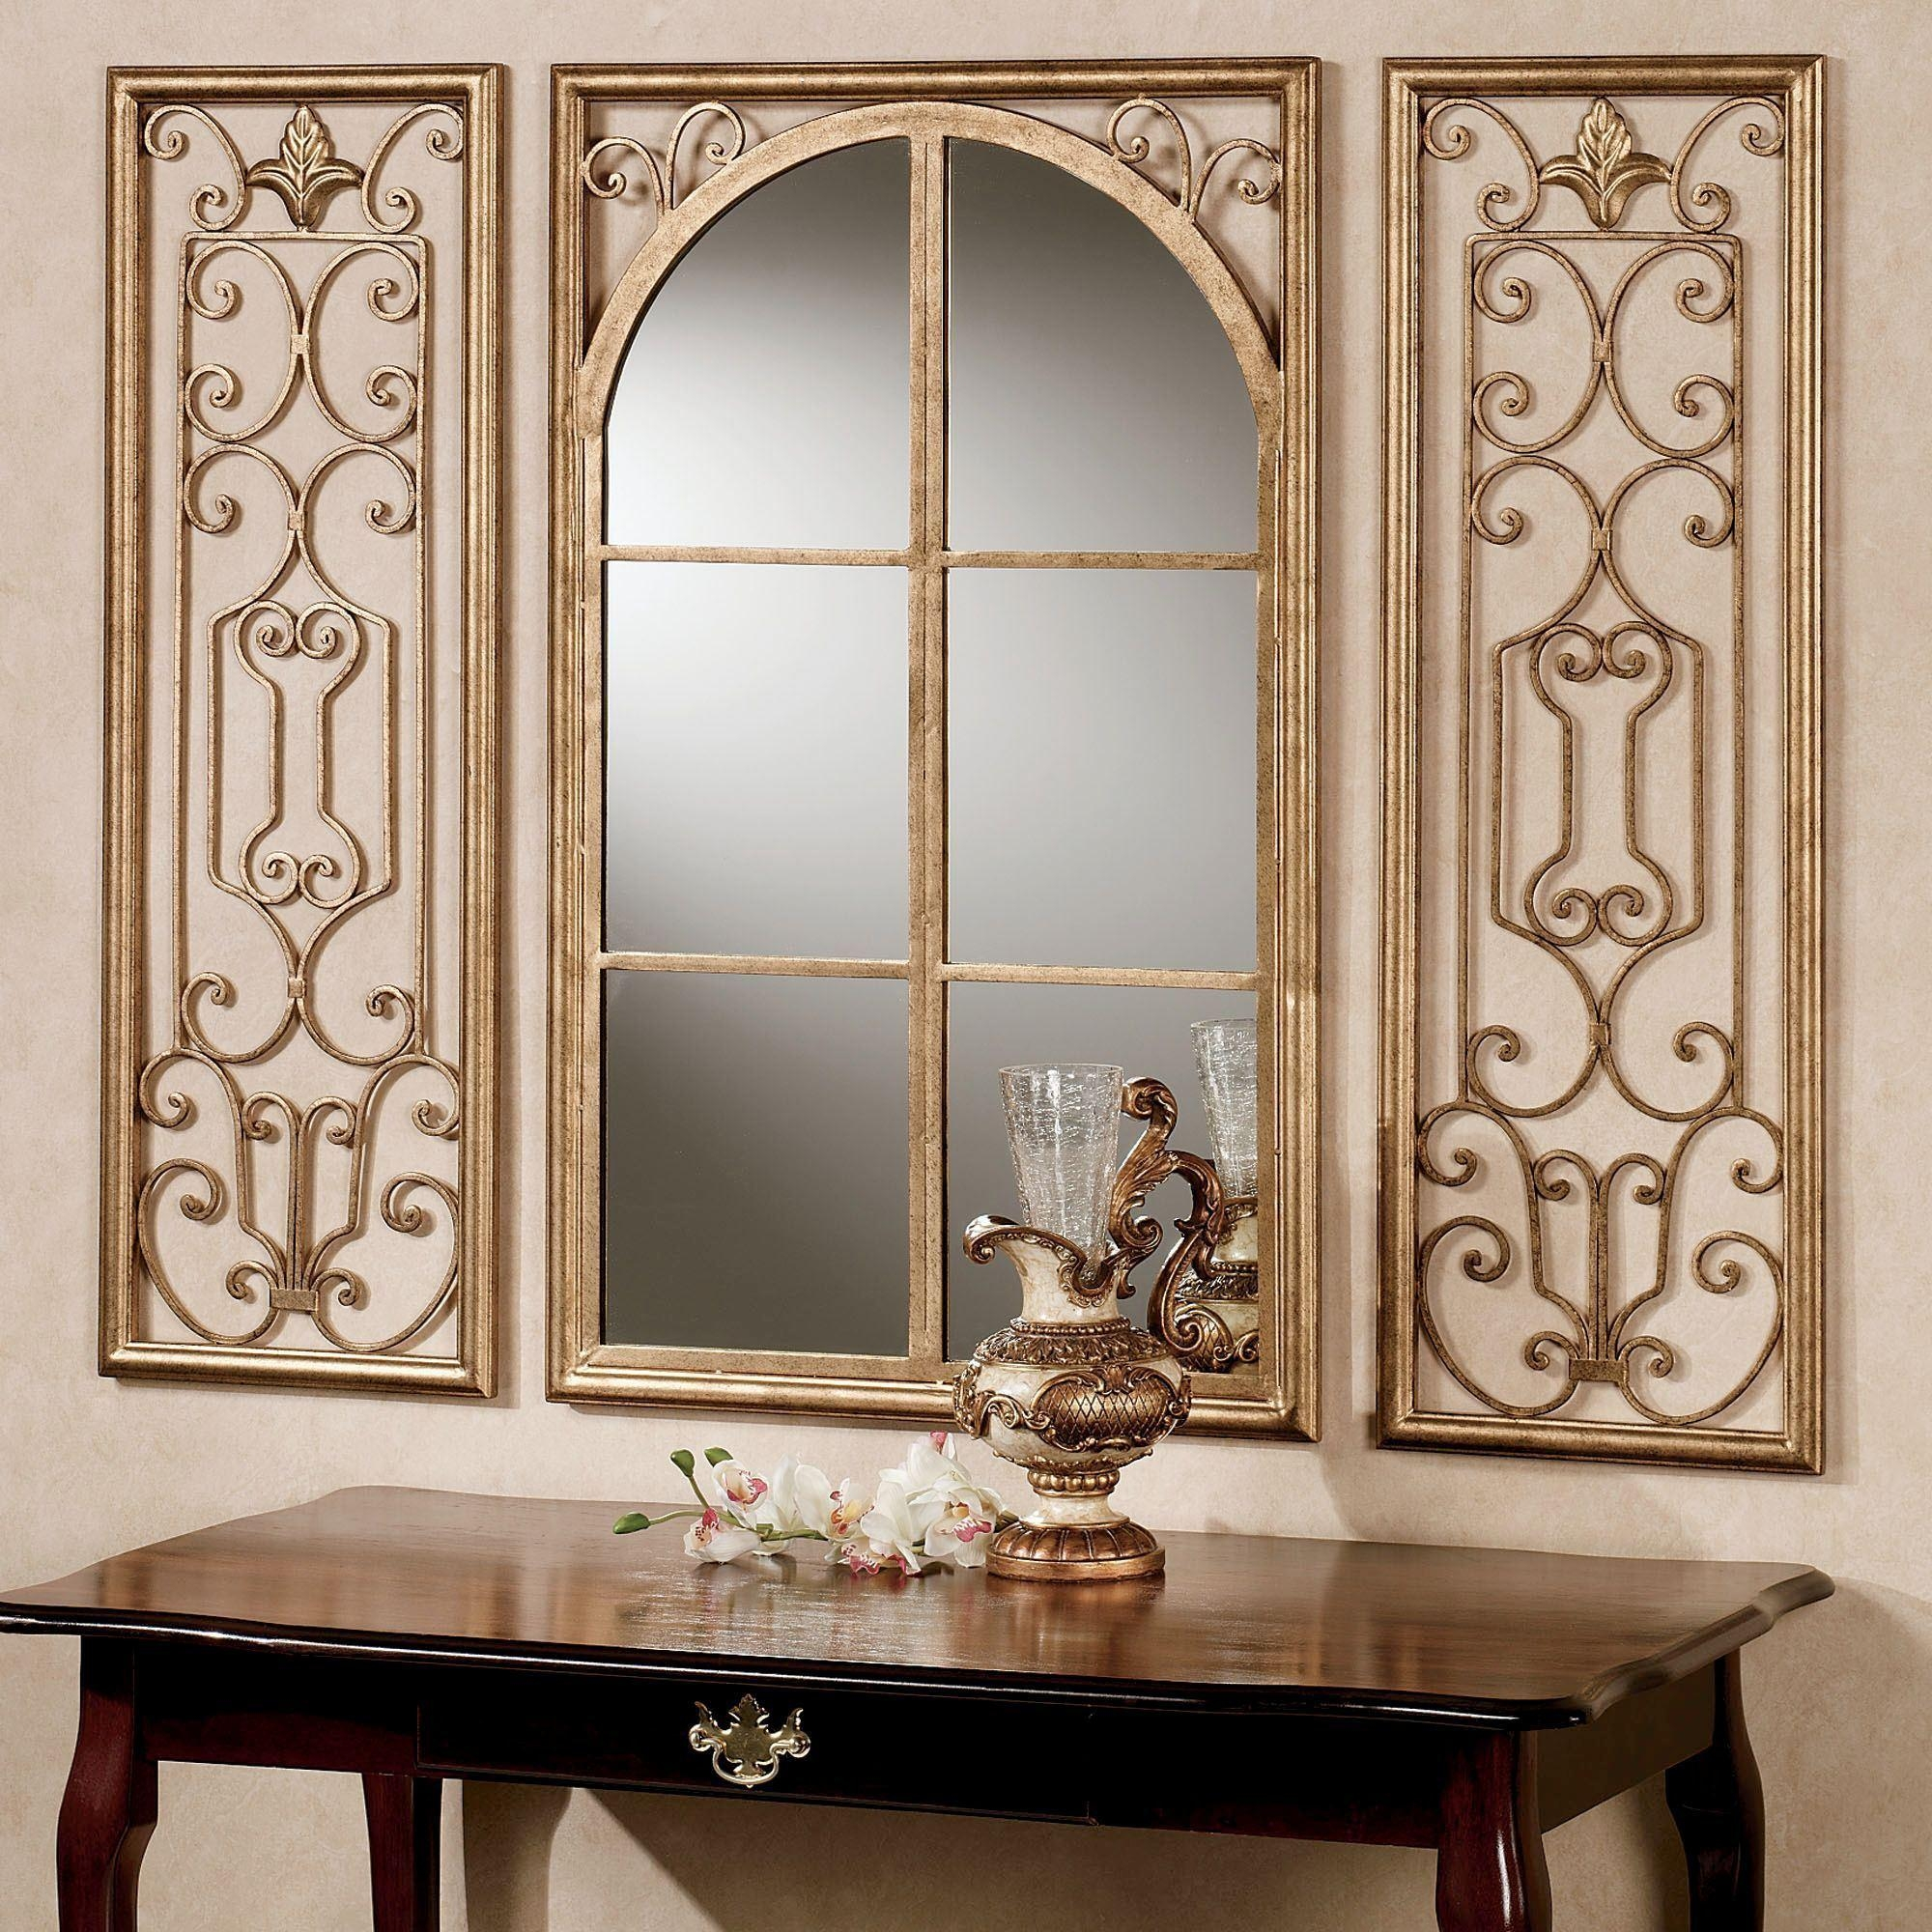 Provence Antique Gold Finish Wall Mirror Set Inside Gold Wall Mirrors (Image 14 of 20)